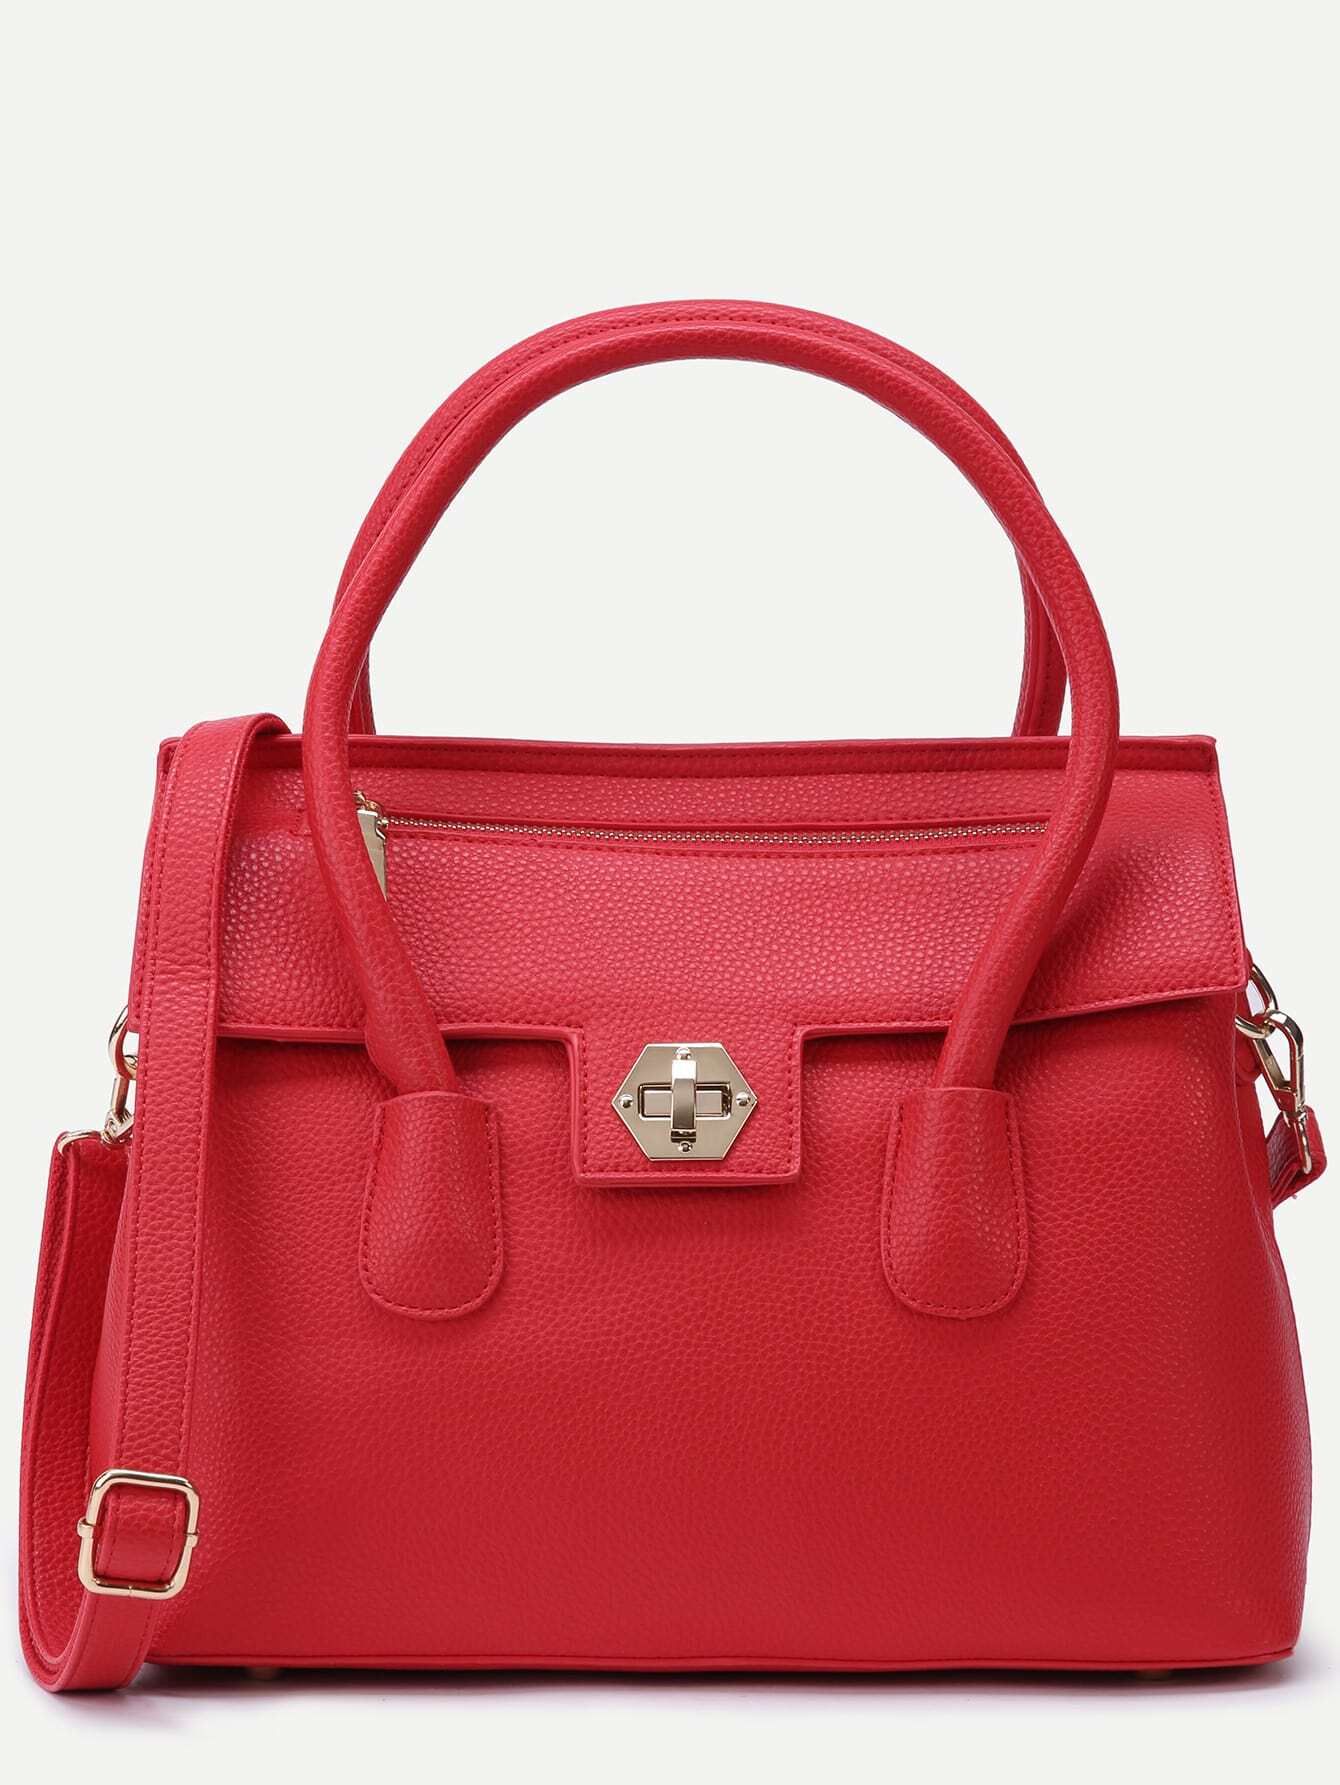 Red Pebbled PU Flap Handbag With Strap Image